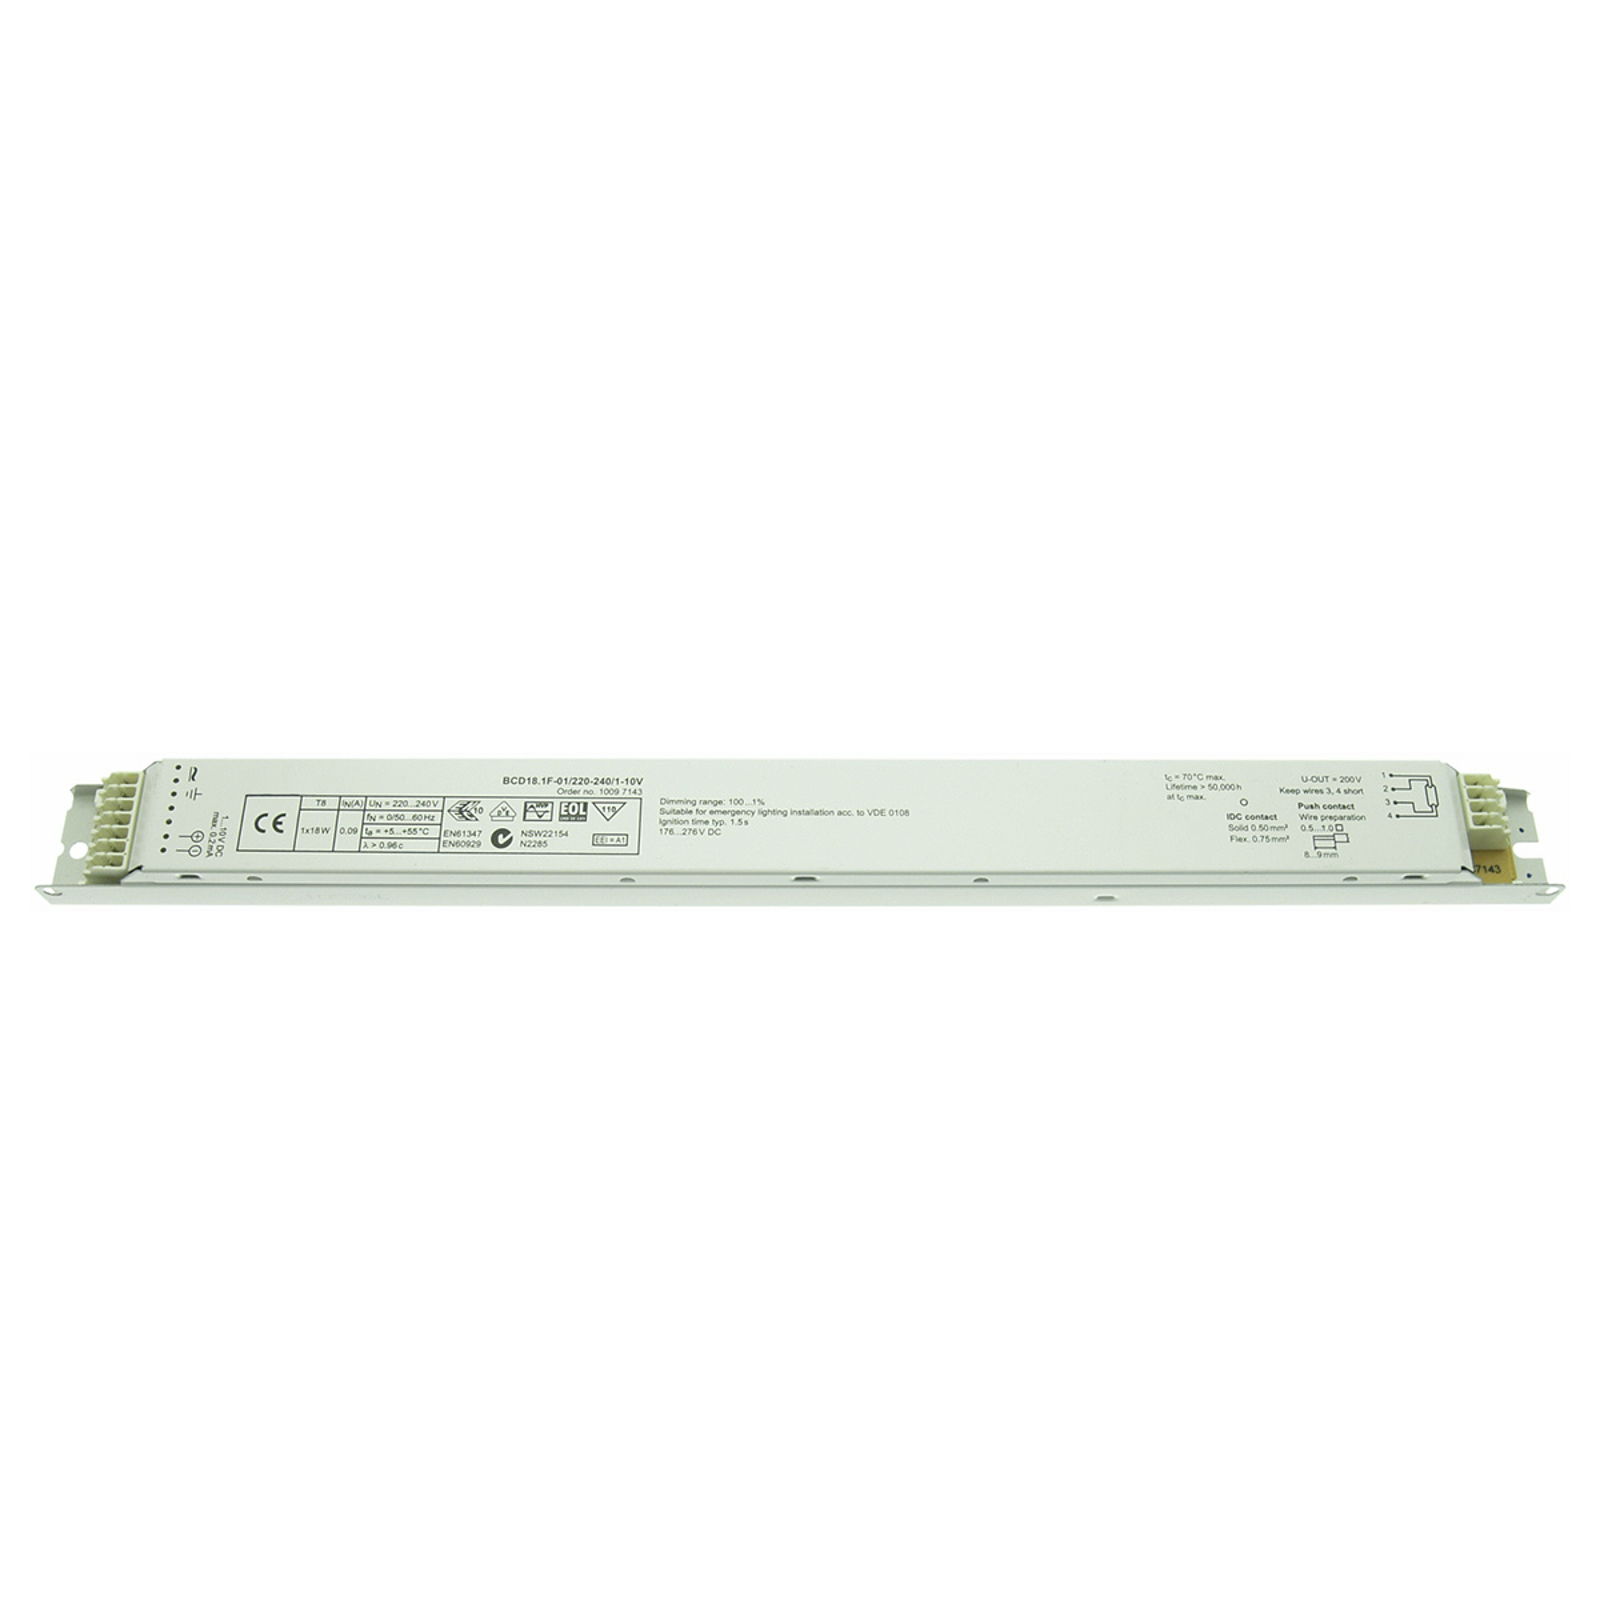 BE dimmable 18/30W T8 BCD18.1F-01/220-240/1-10V